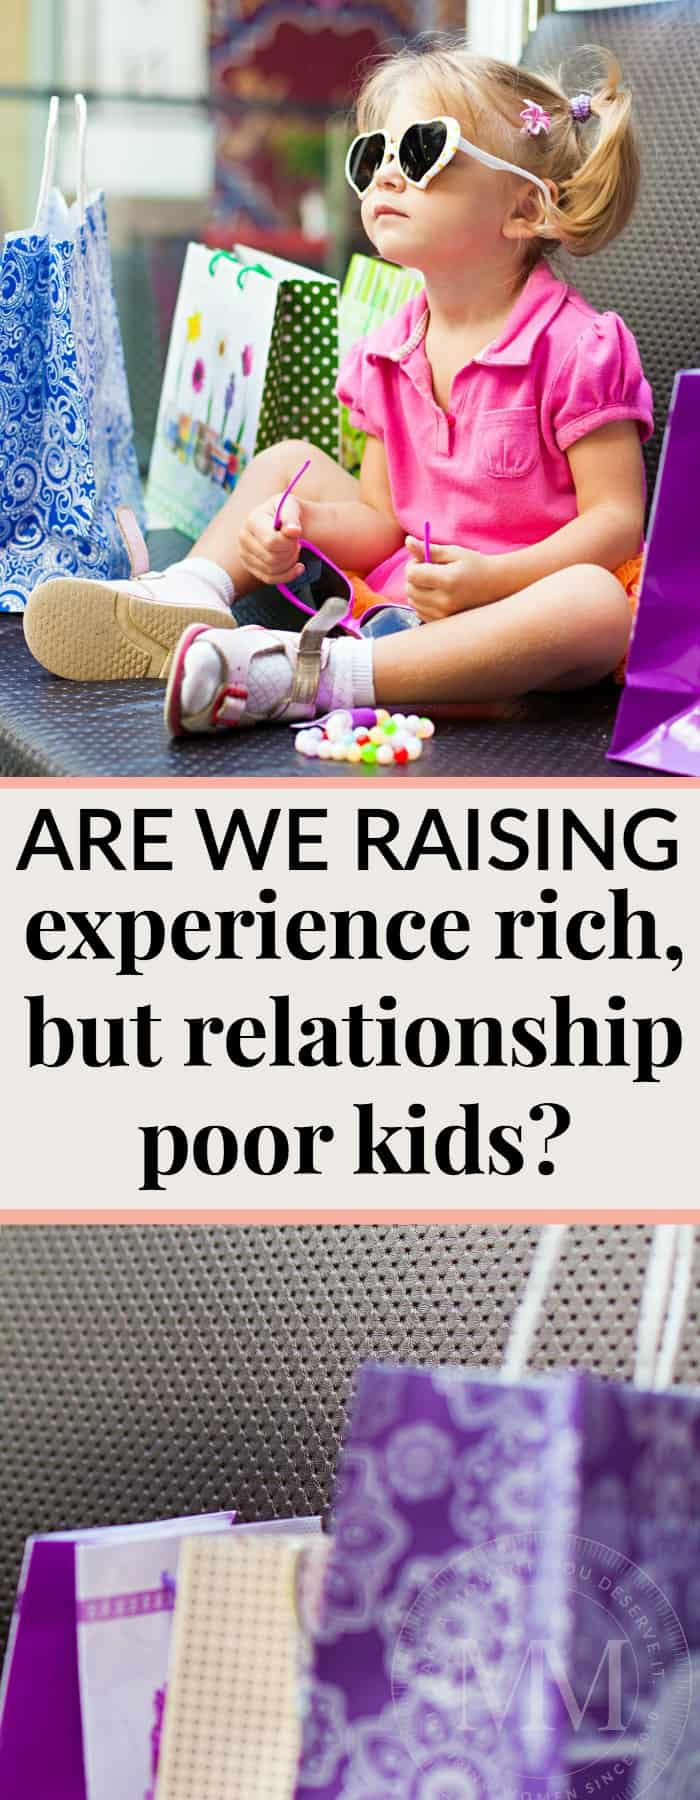 relationship poor kids